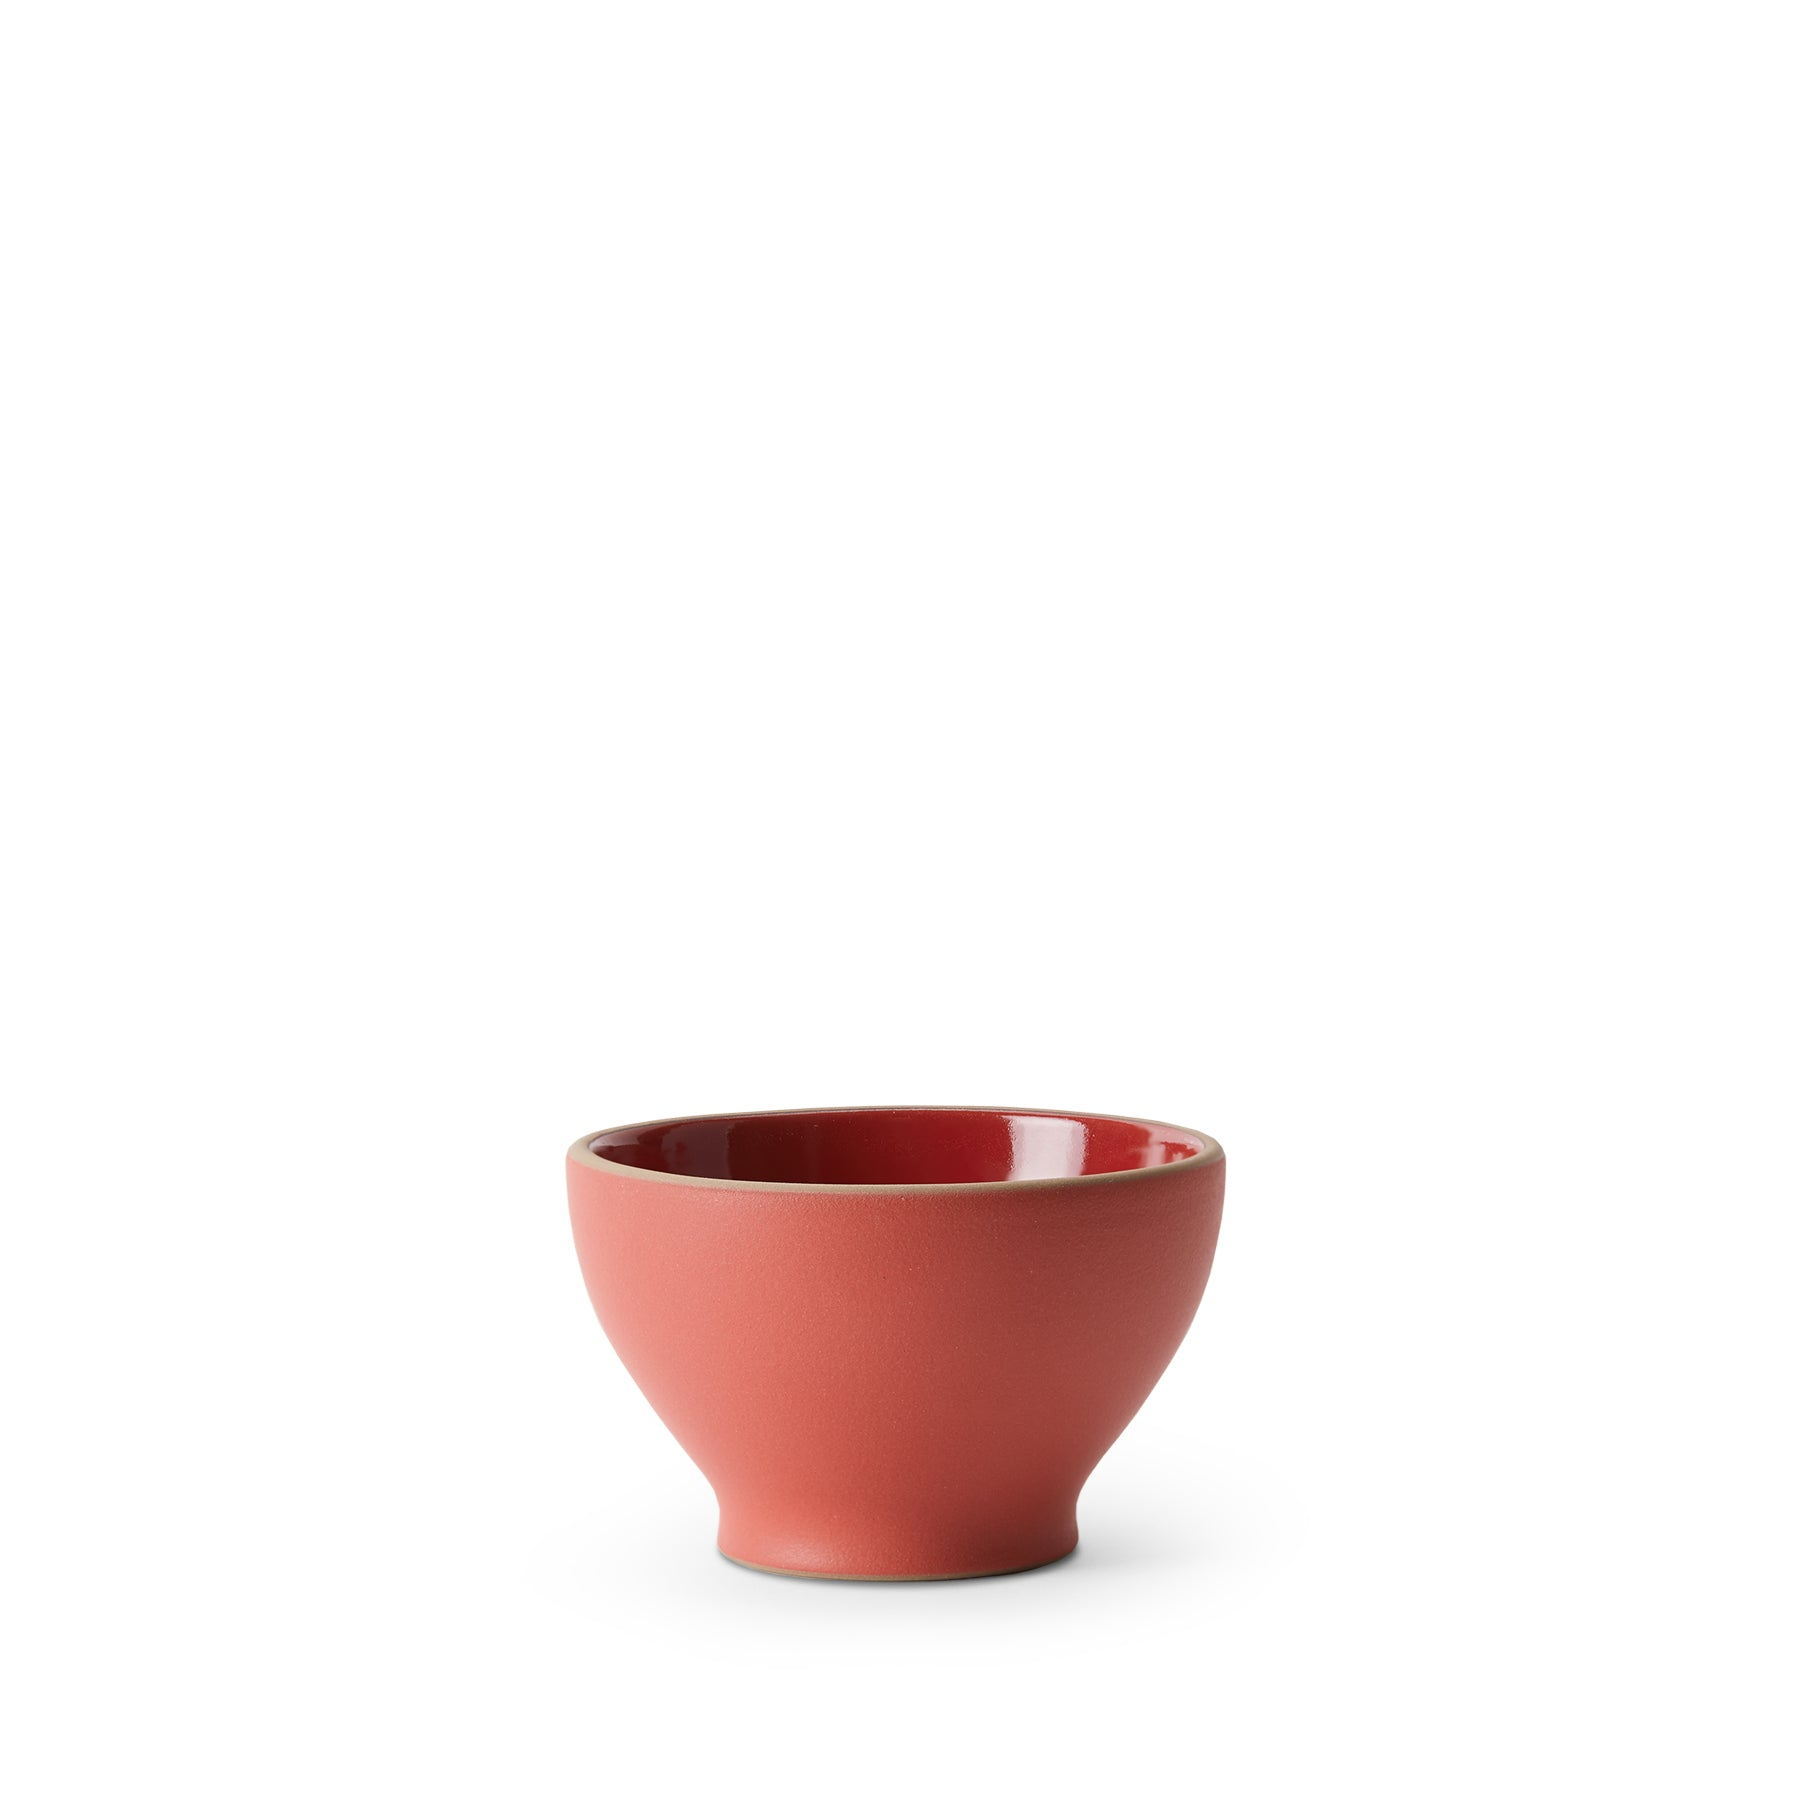 Chez Panisse Cafe Bowl in Ruby Red/Suede Red Zoom Image 1